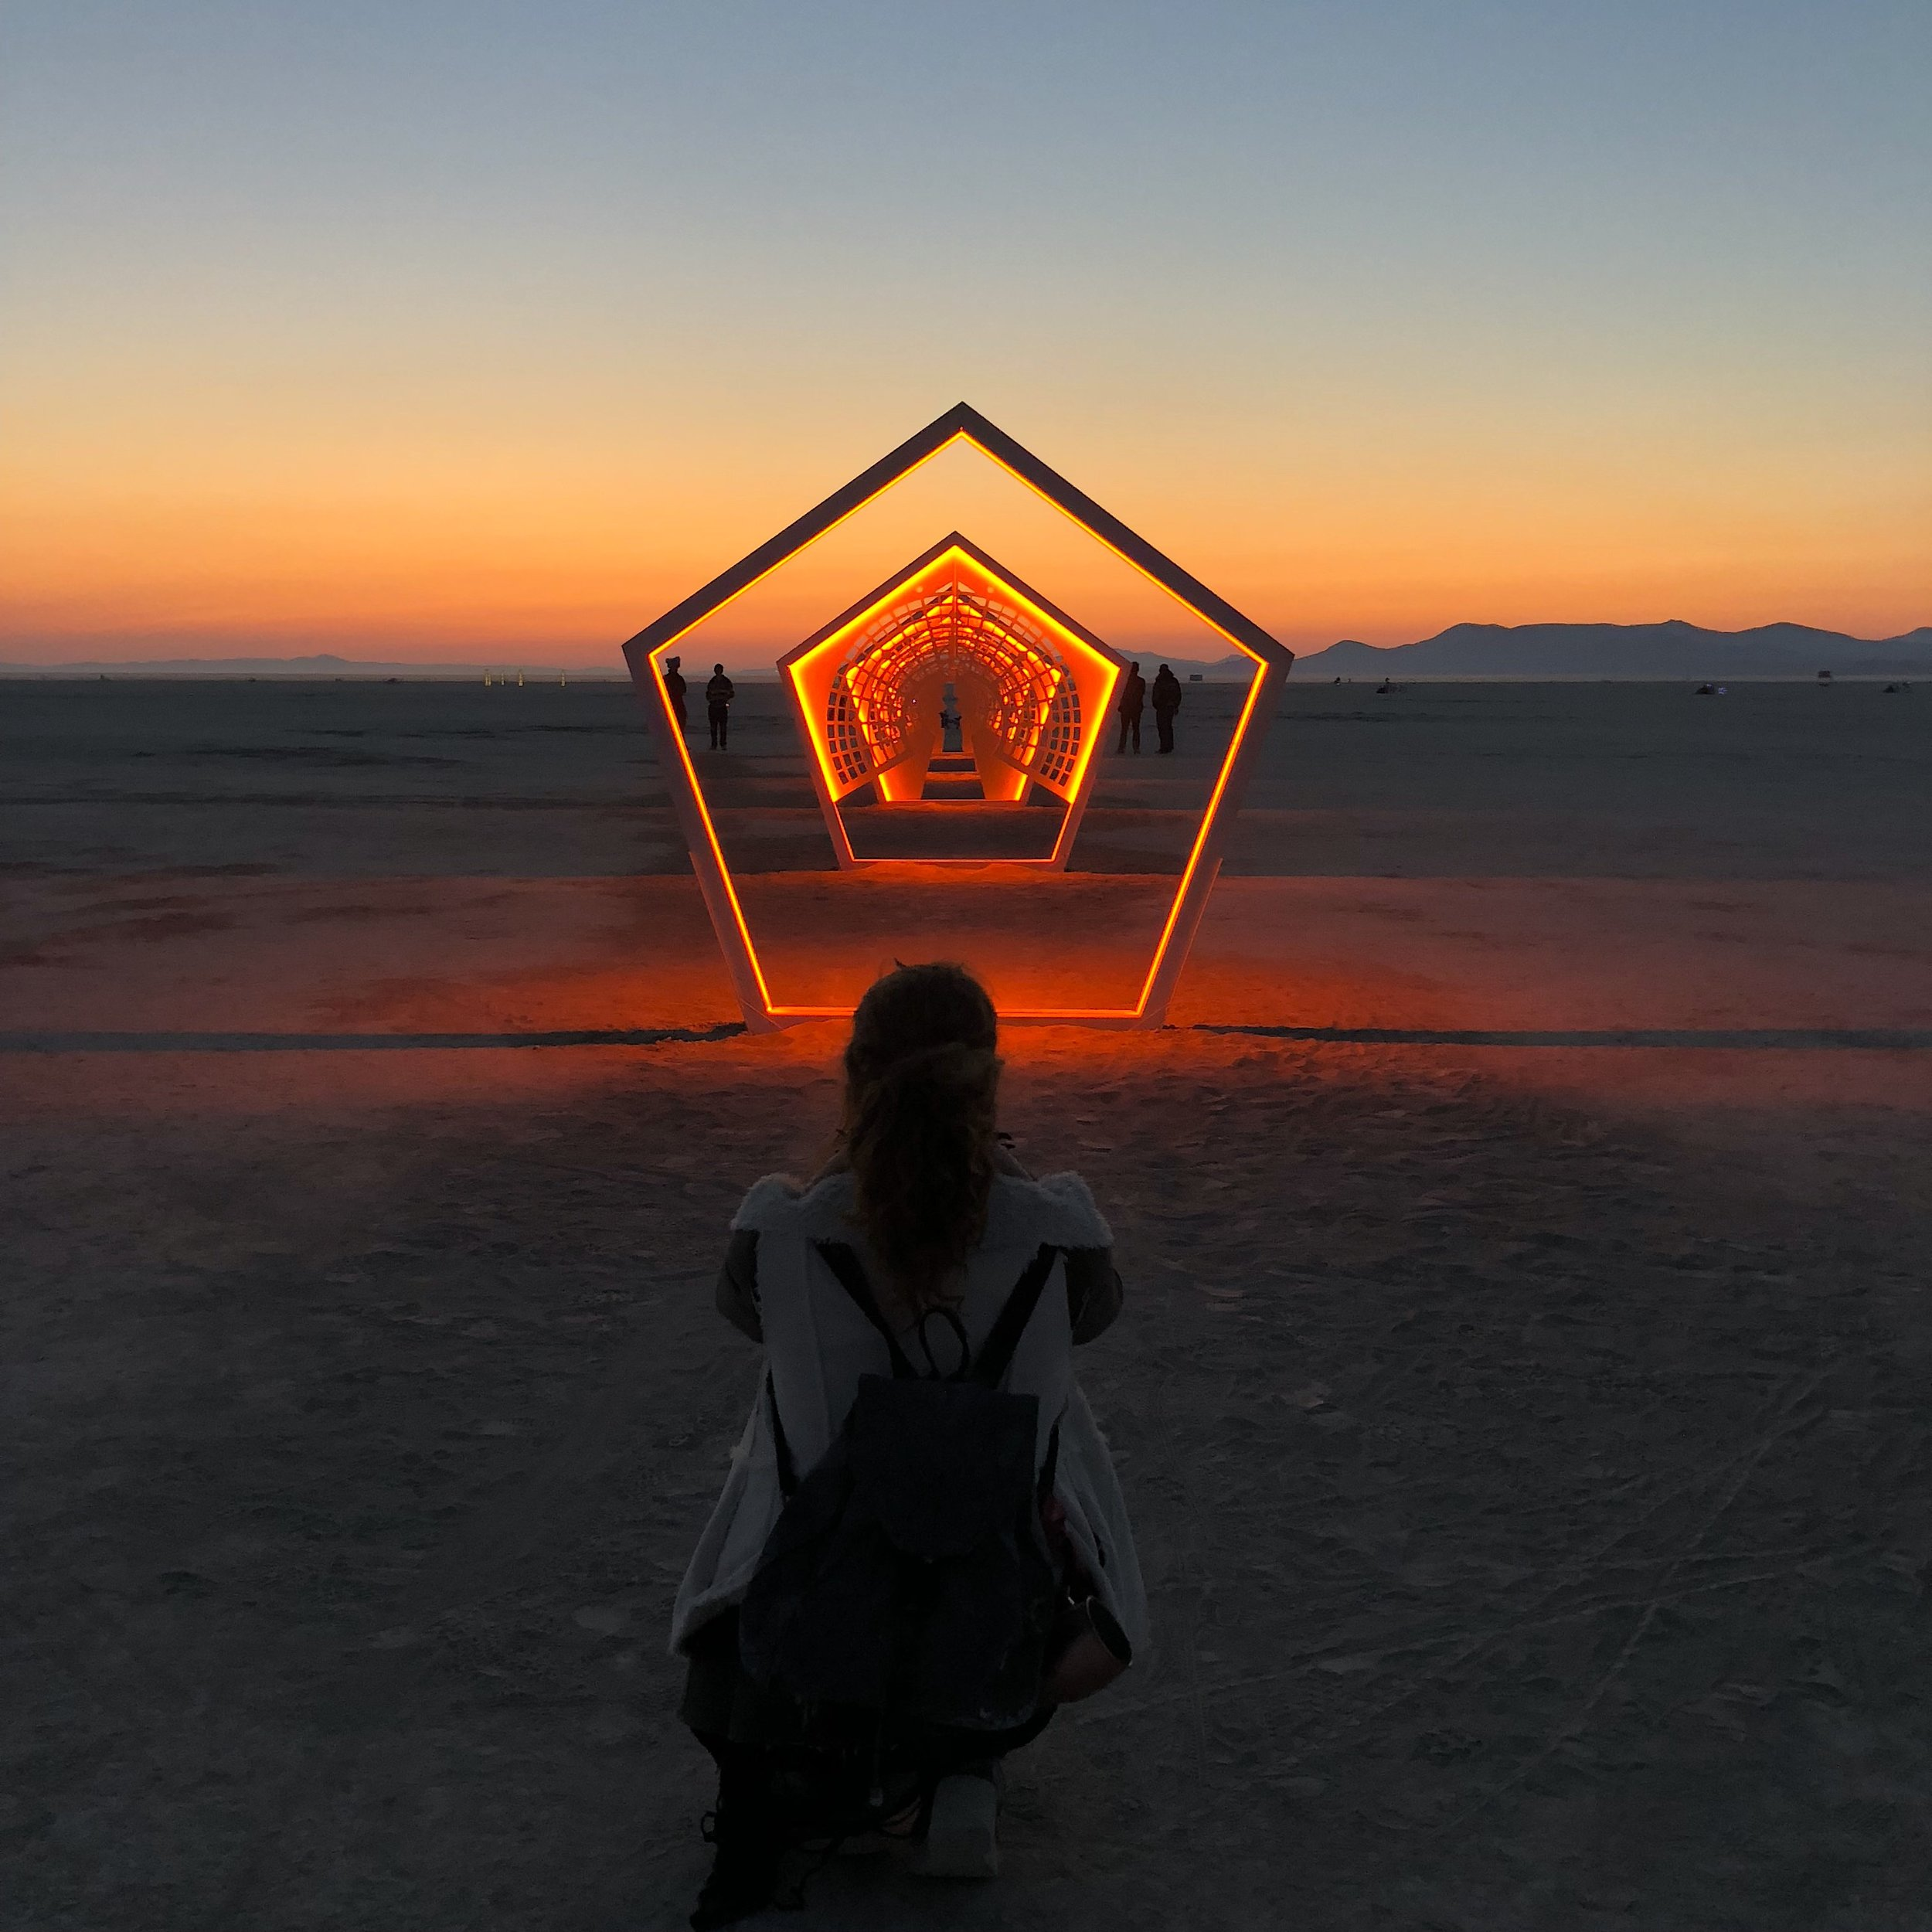 Kate and Passage Home - a sculpture tribute to Larry Harvey- Burning Man 2018-  photo by Shawn Cunningham.jpeg